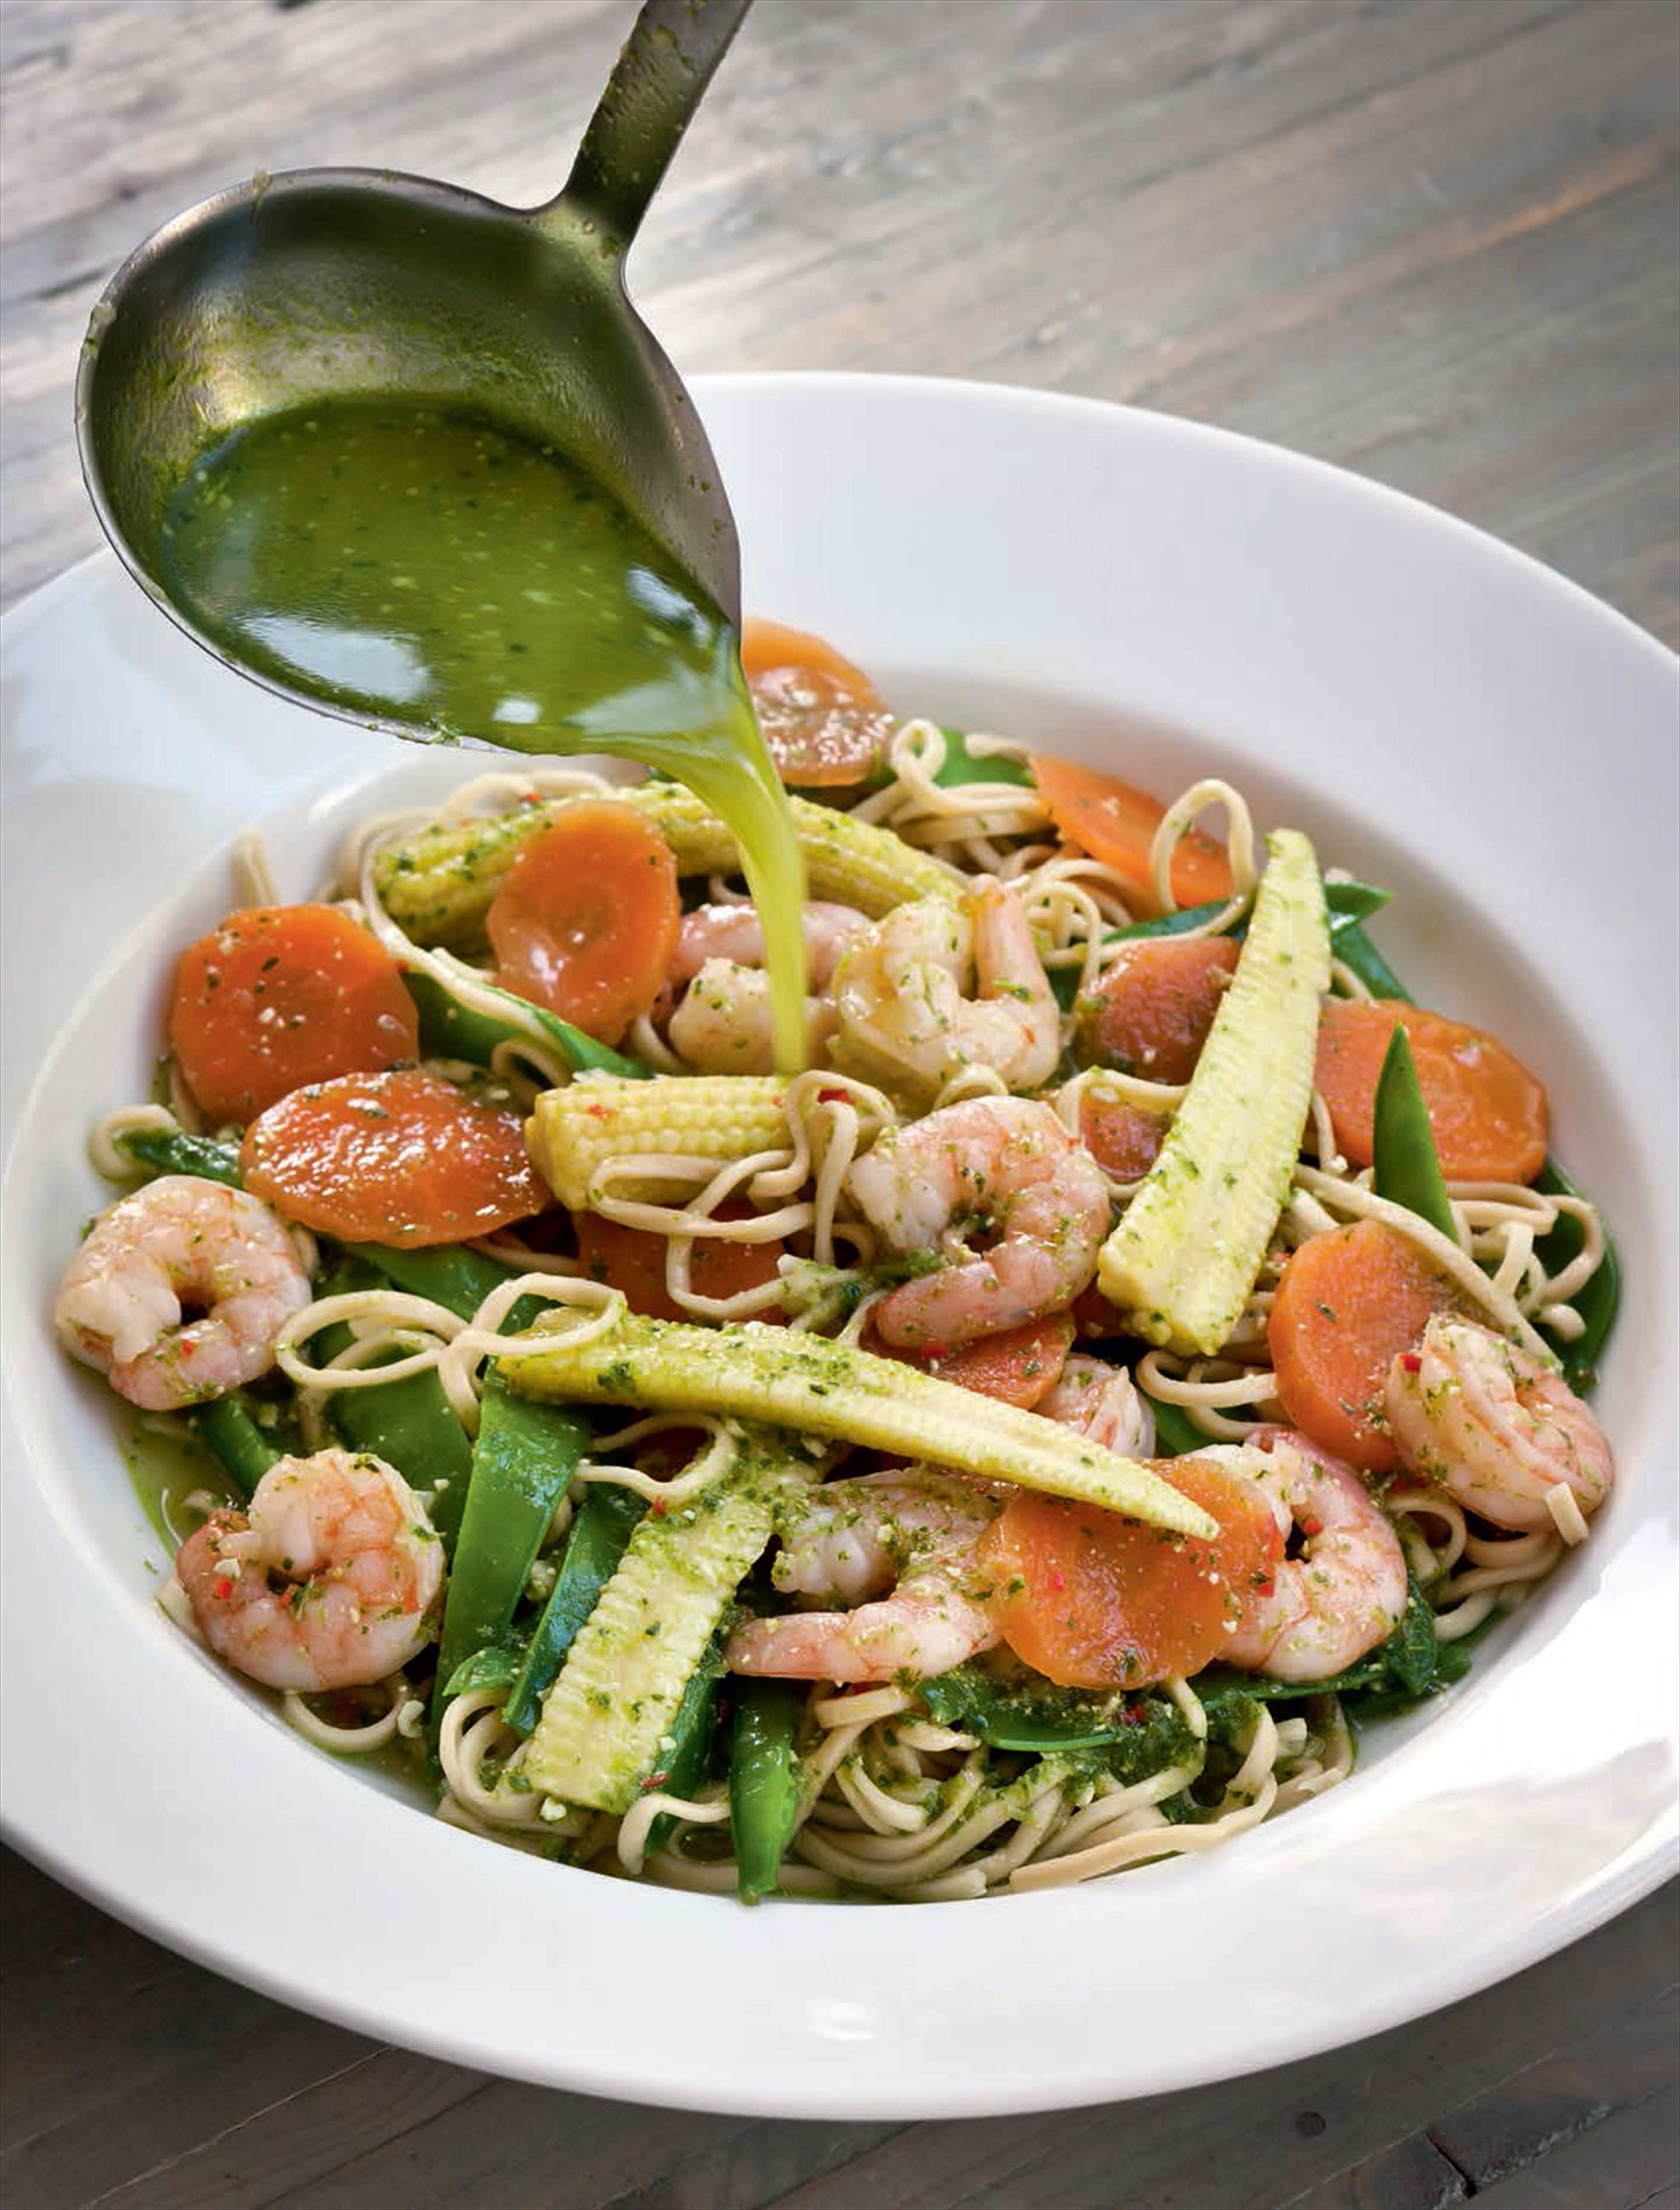 Prawn, carrot & noodle broth with ginger & pesto